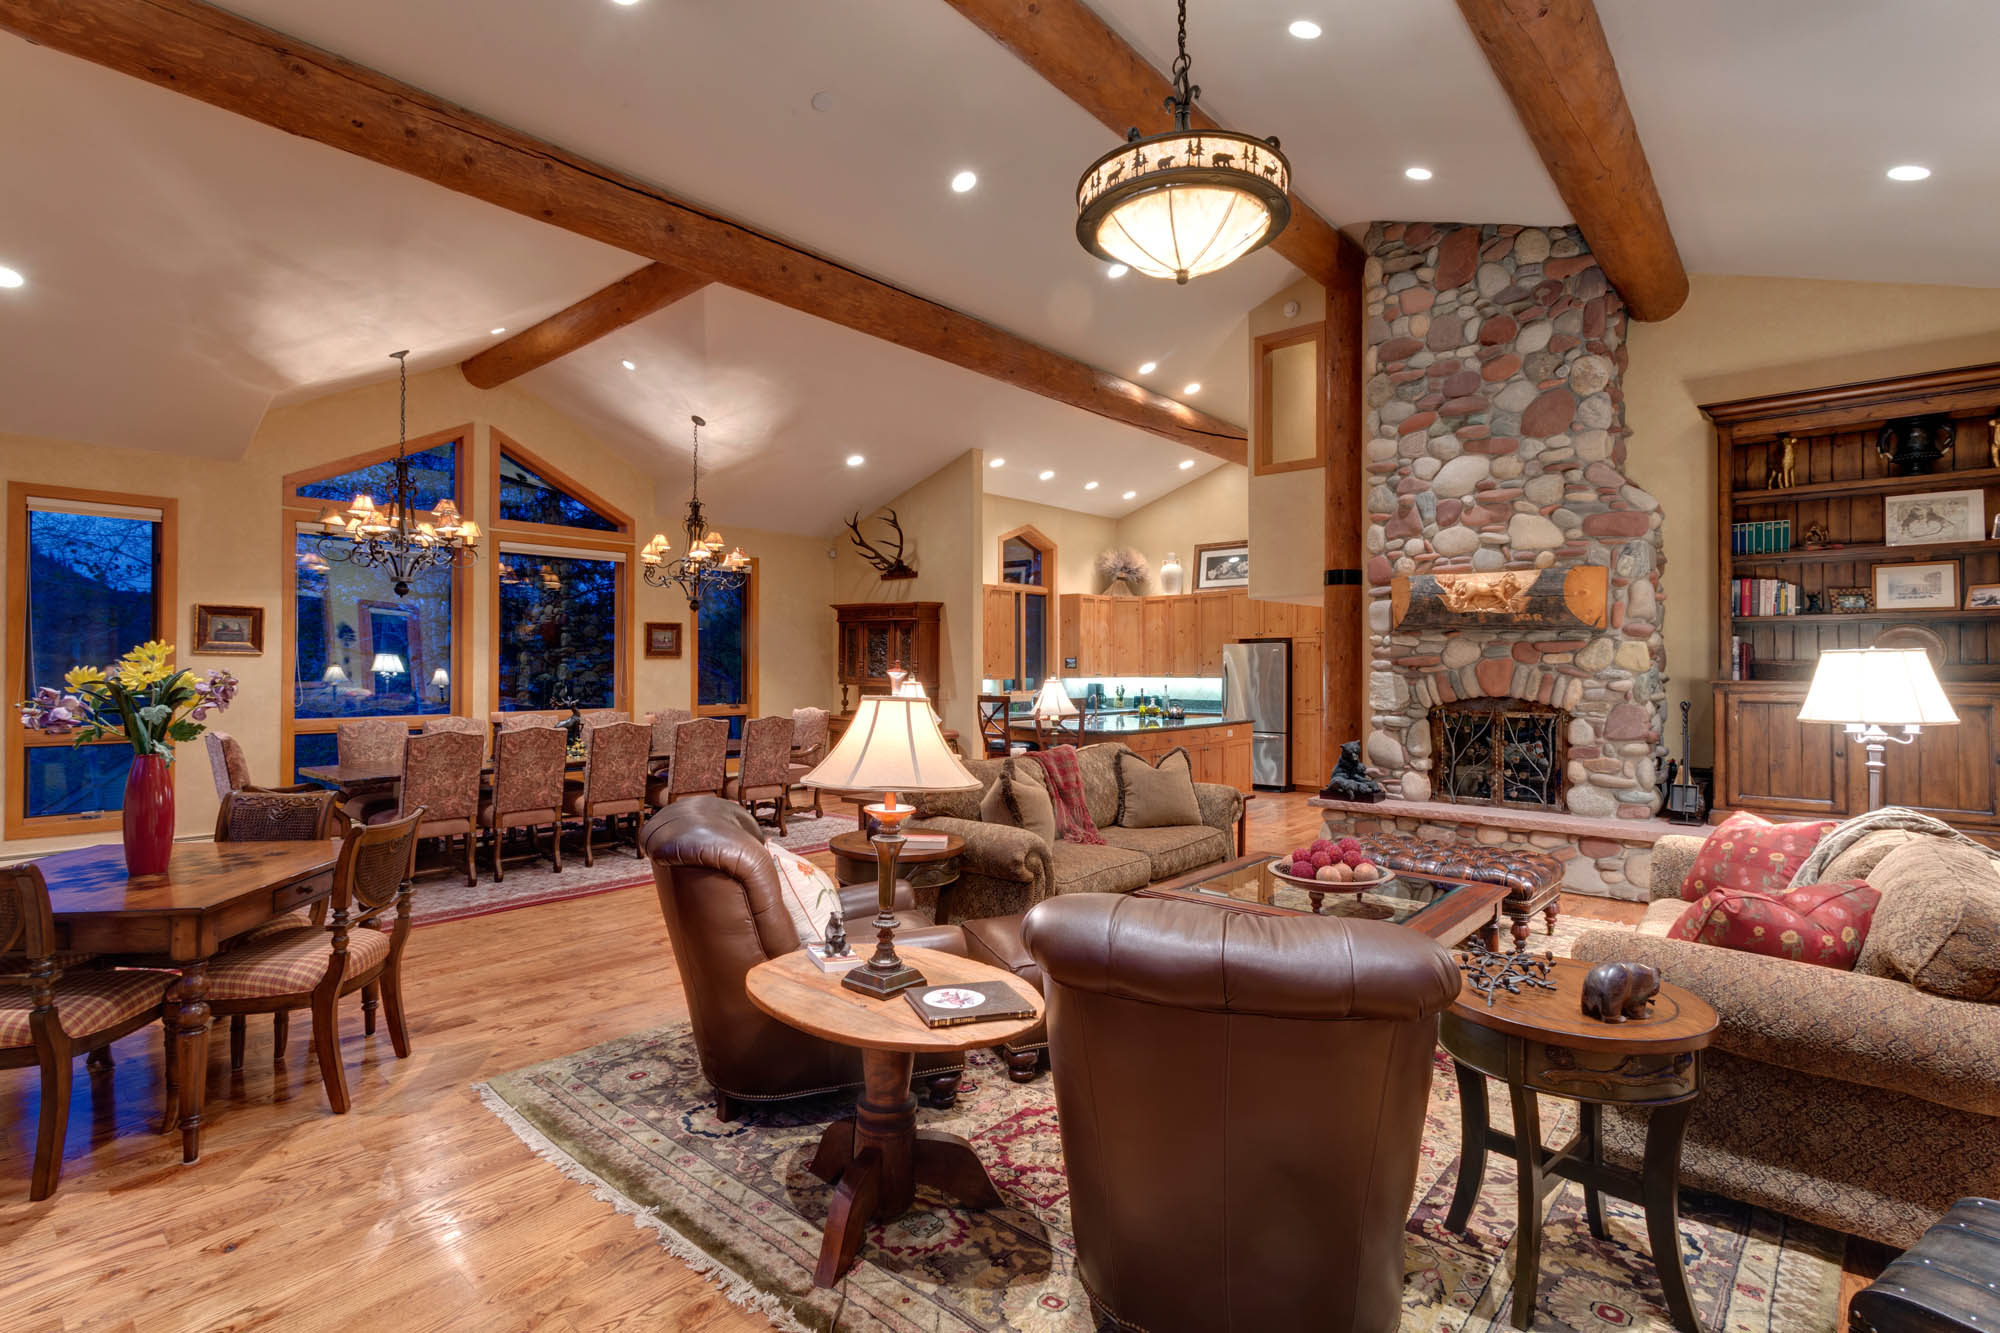 Property For Sale at Warm, Elegant Snowmass Home